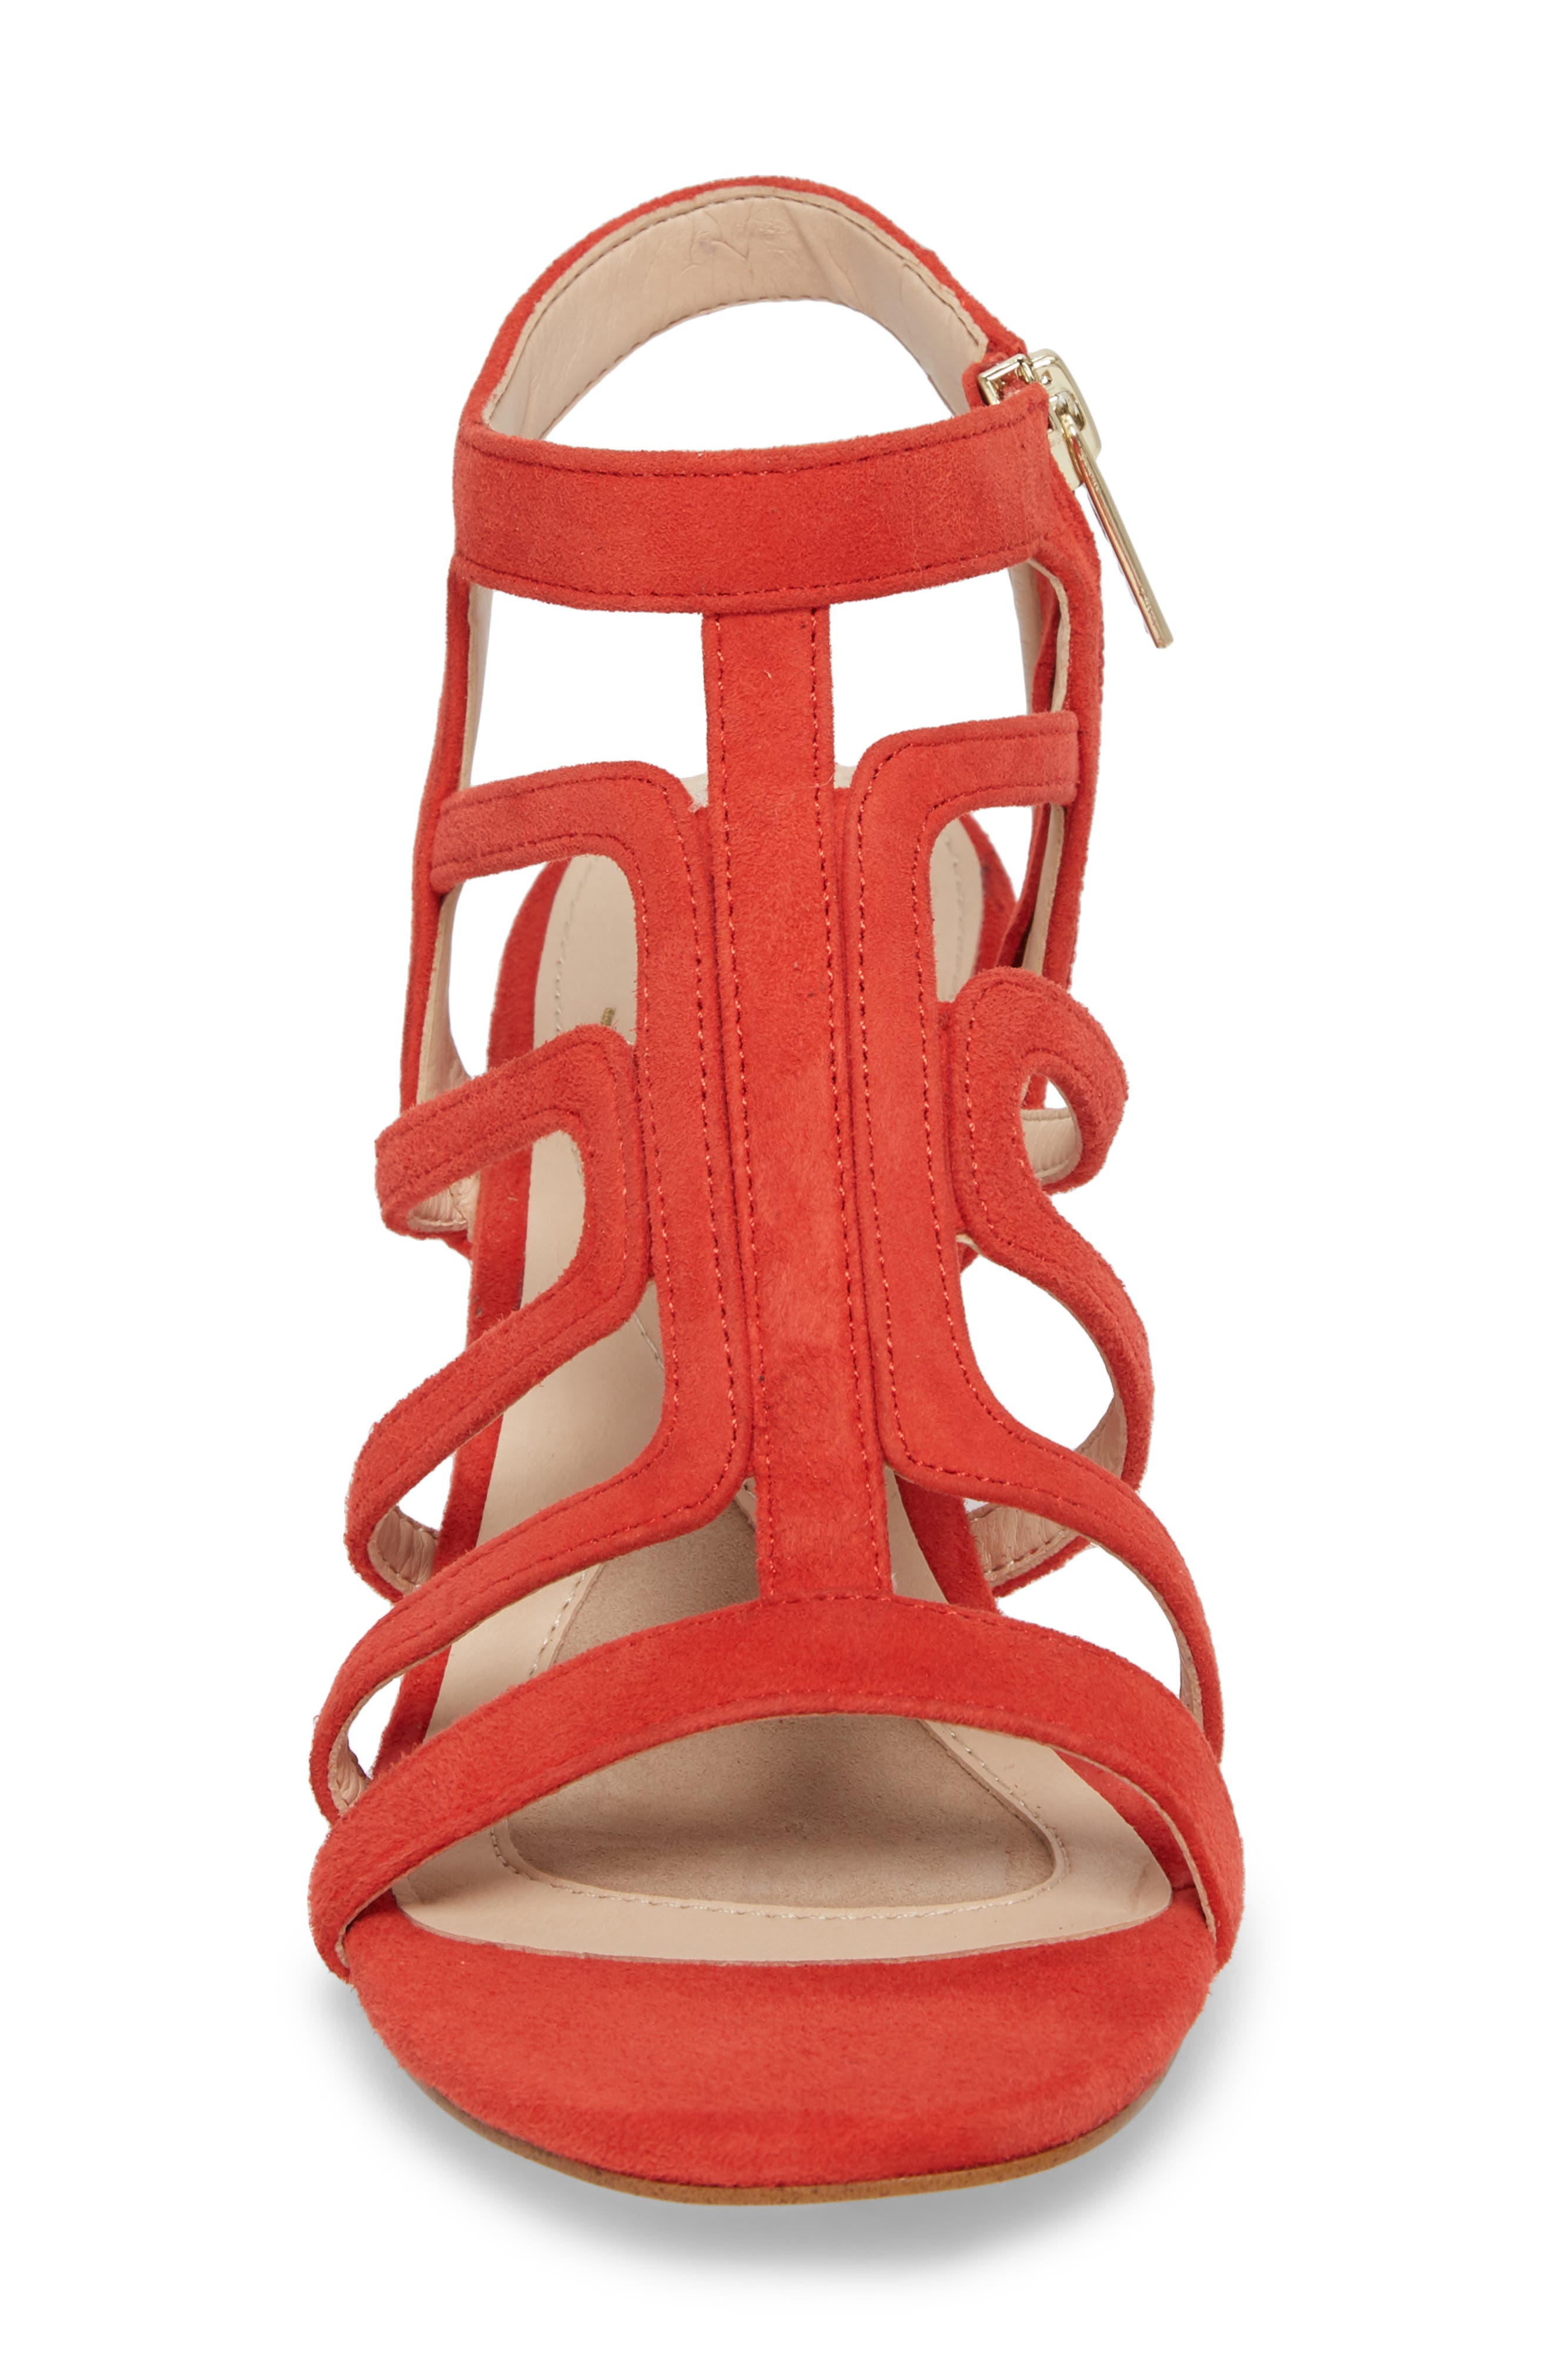 Lina Sandal,                             Alternate thumbnail 4, color,                             Lipstick Red Suede